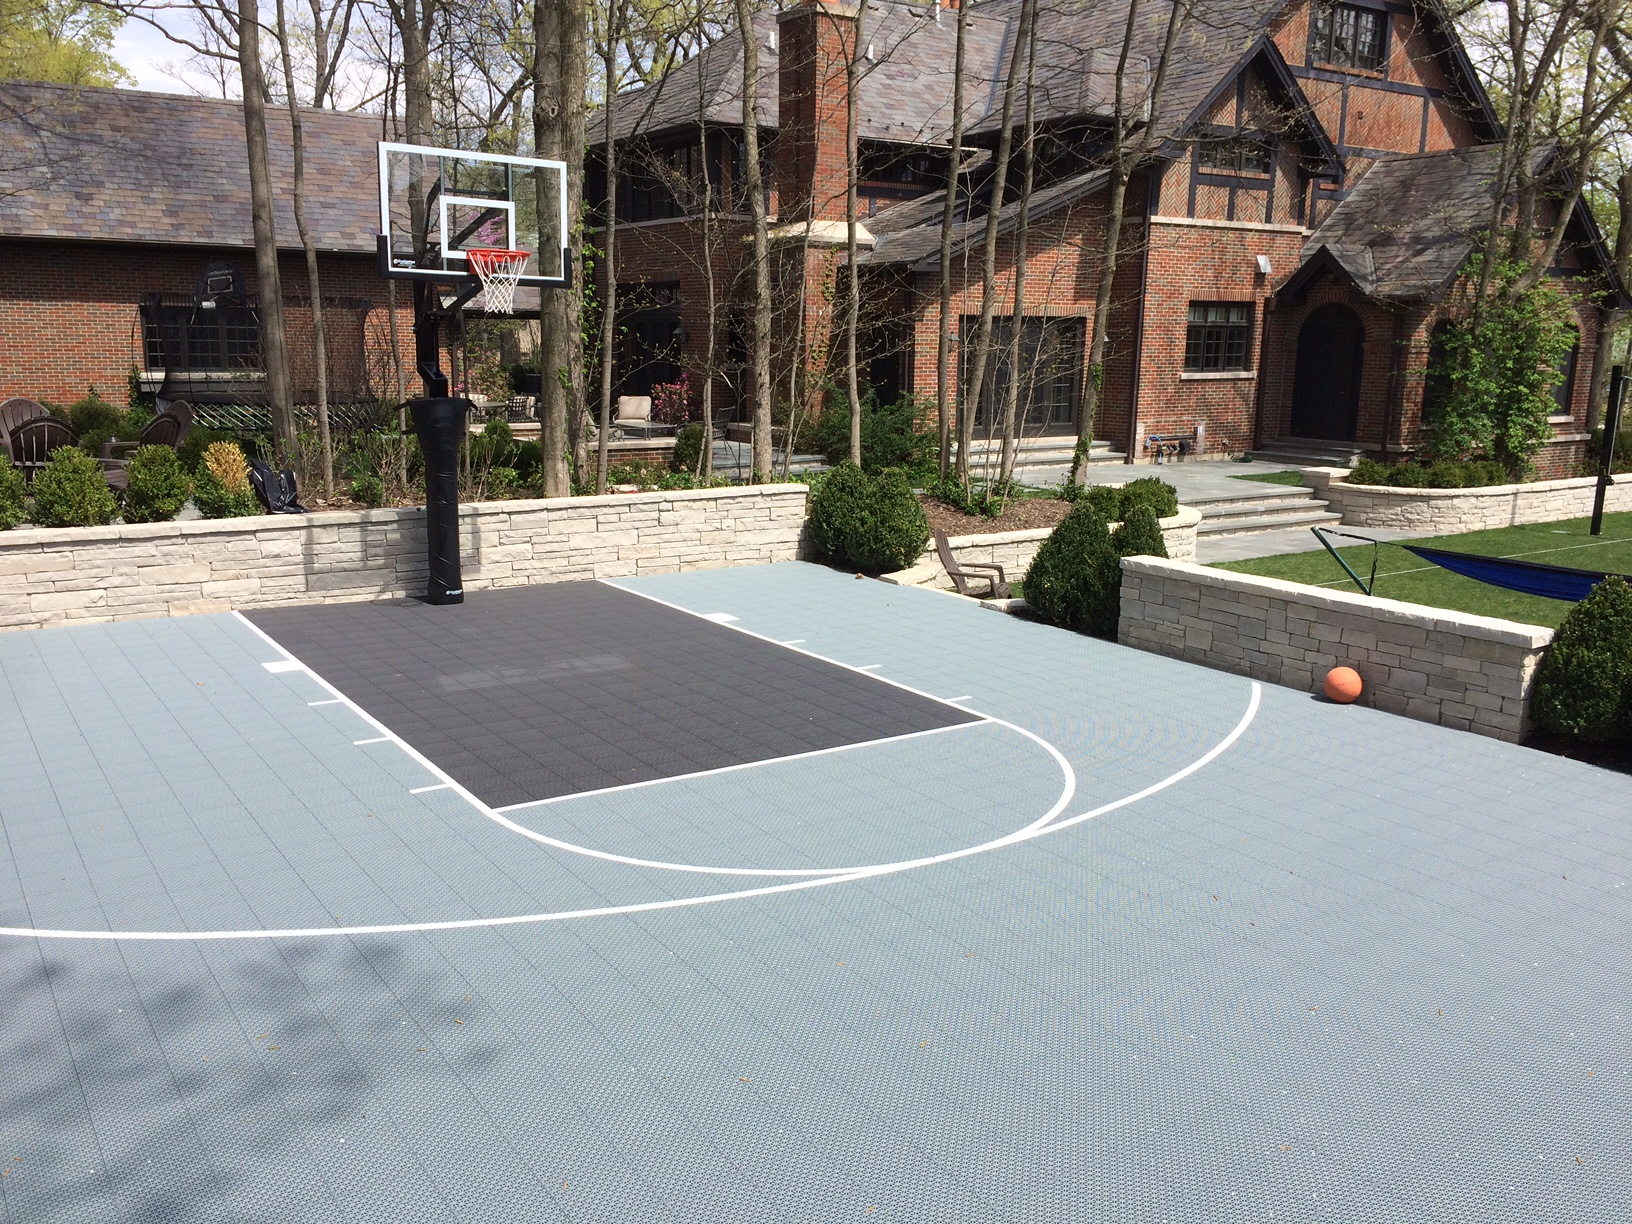 Chicago outdoor basketball courts outdoor designs for Residential basketball court cost